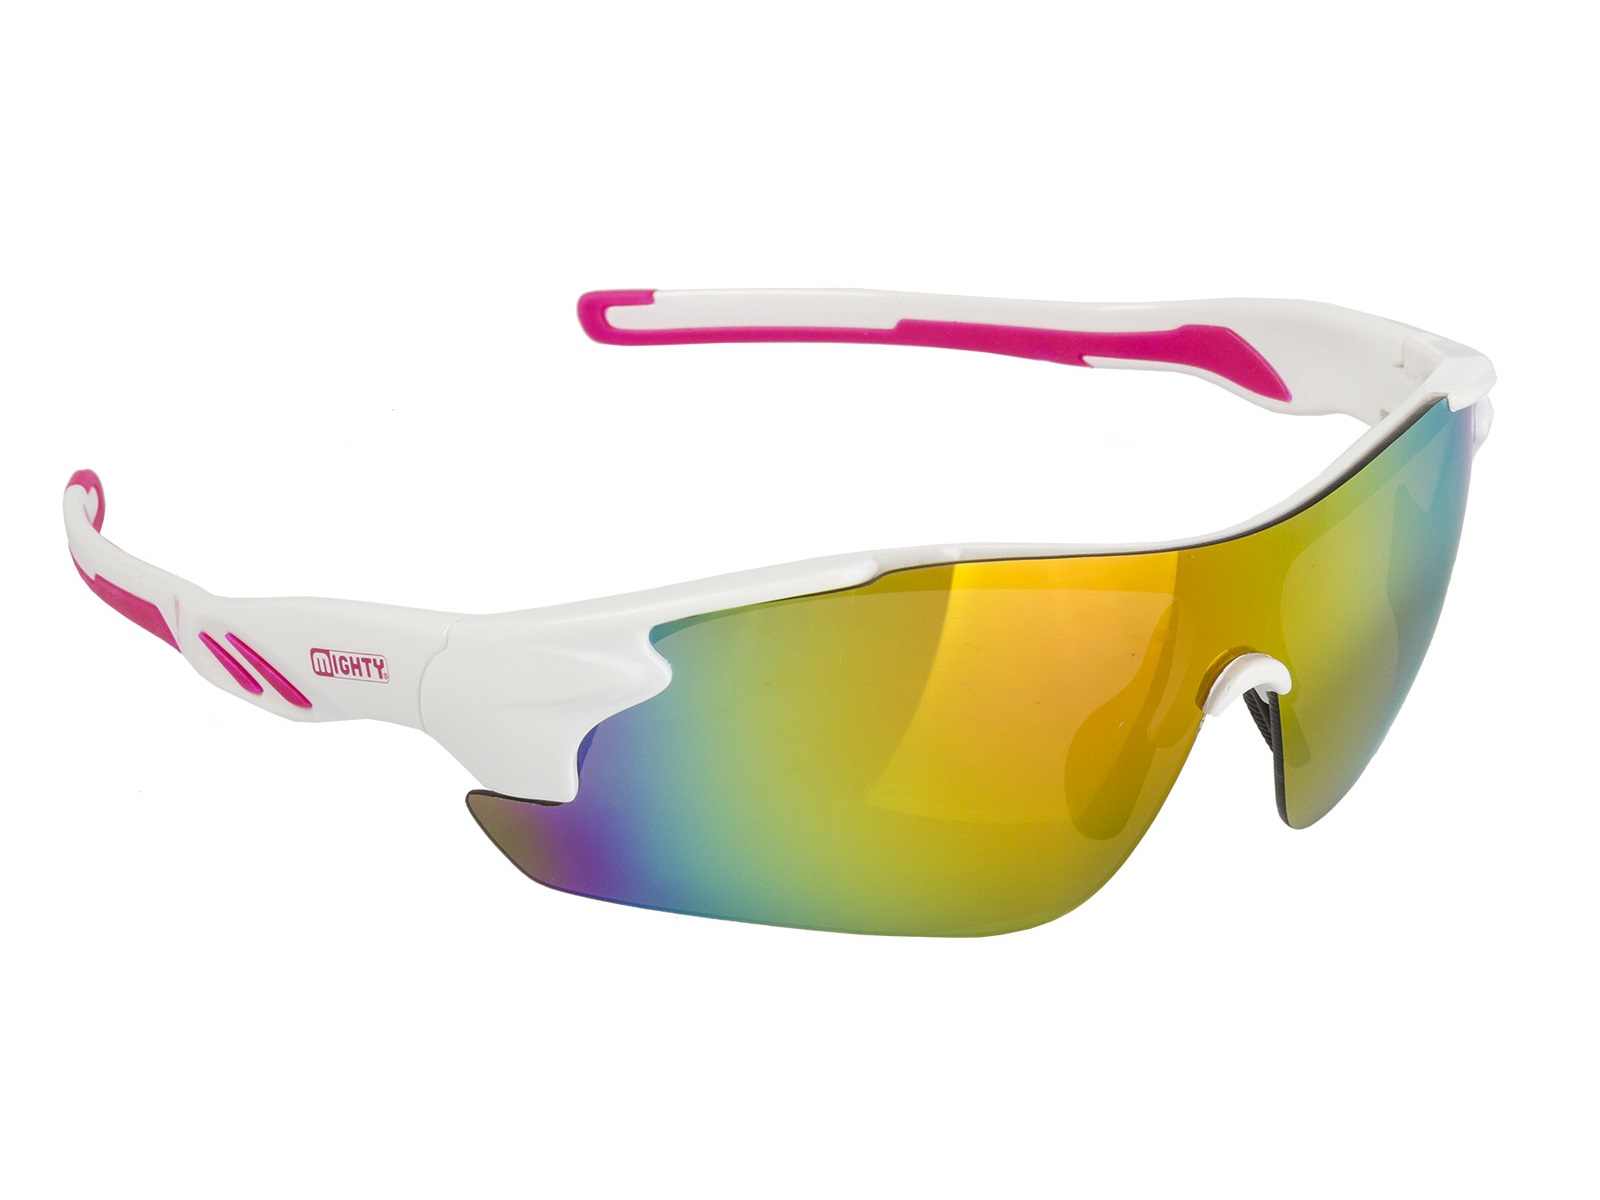 Mighty Rayon One Solbriller, White | cykelbrille